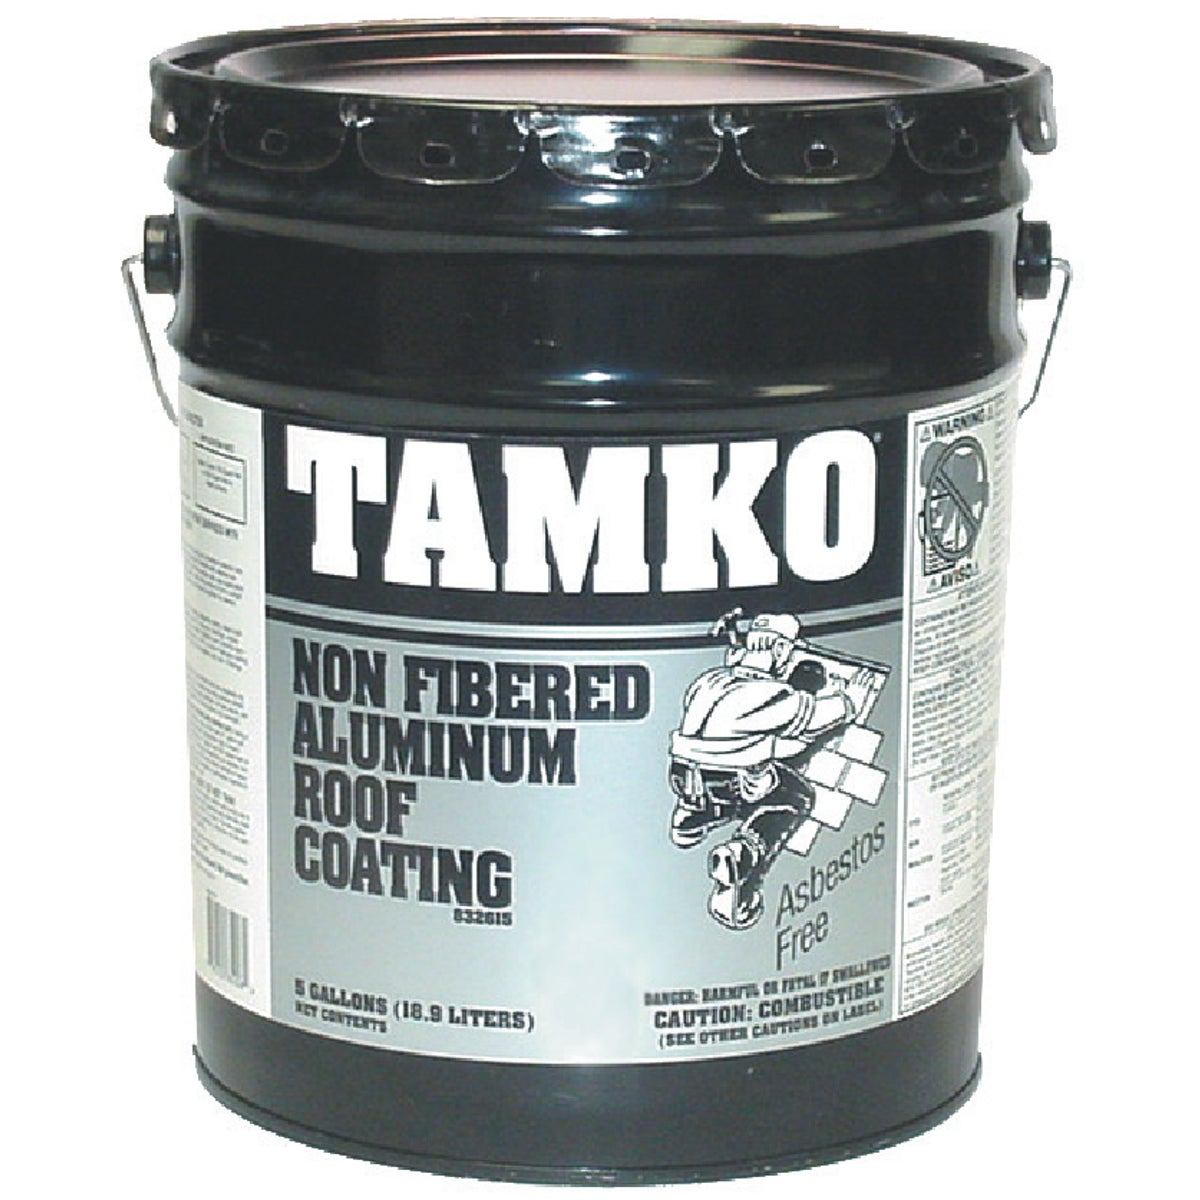 5GAL NFB ALUM RF COATING - 30001298 by Tamko Bldg Prod Inc